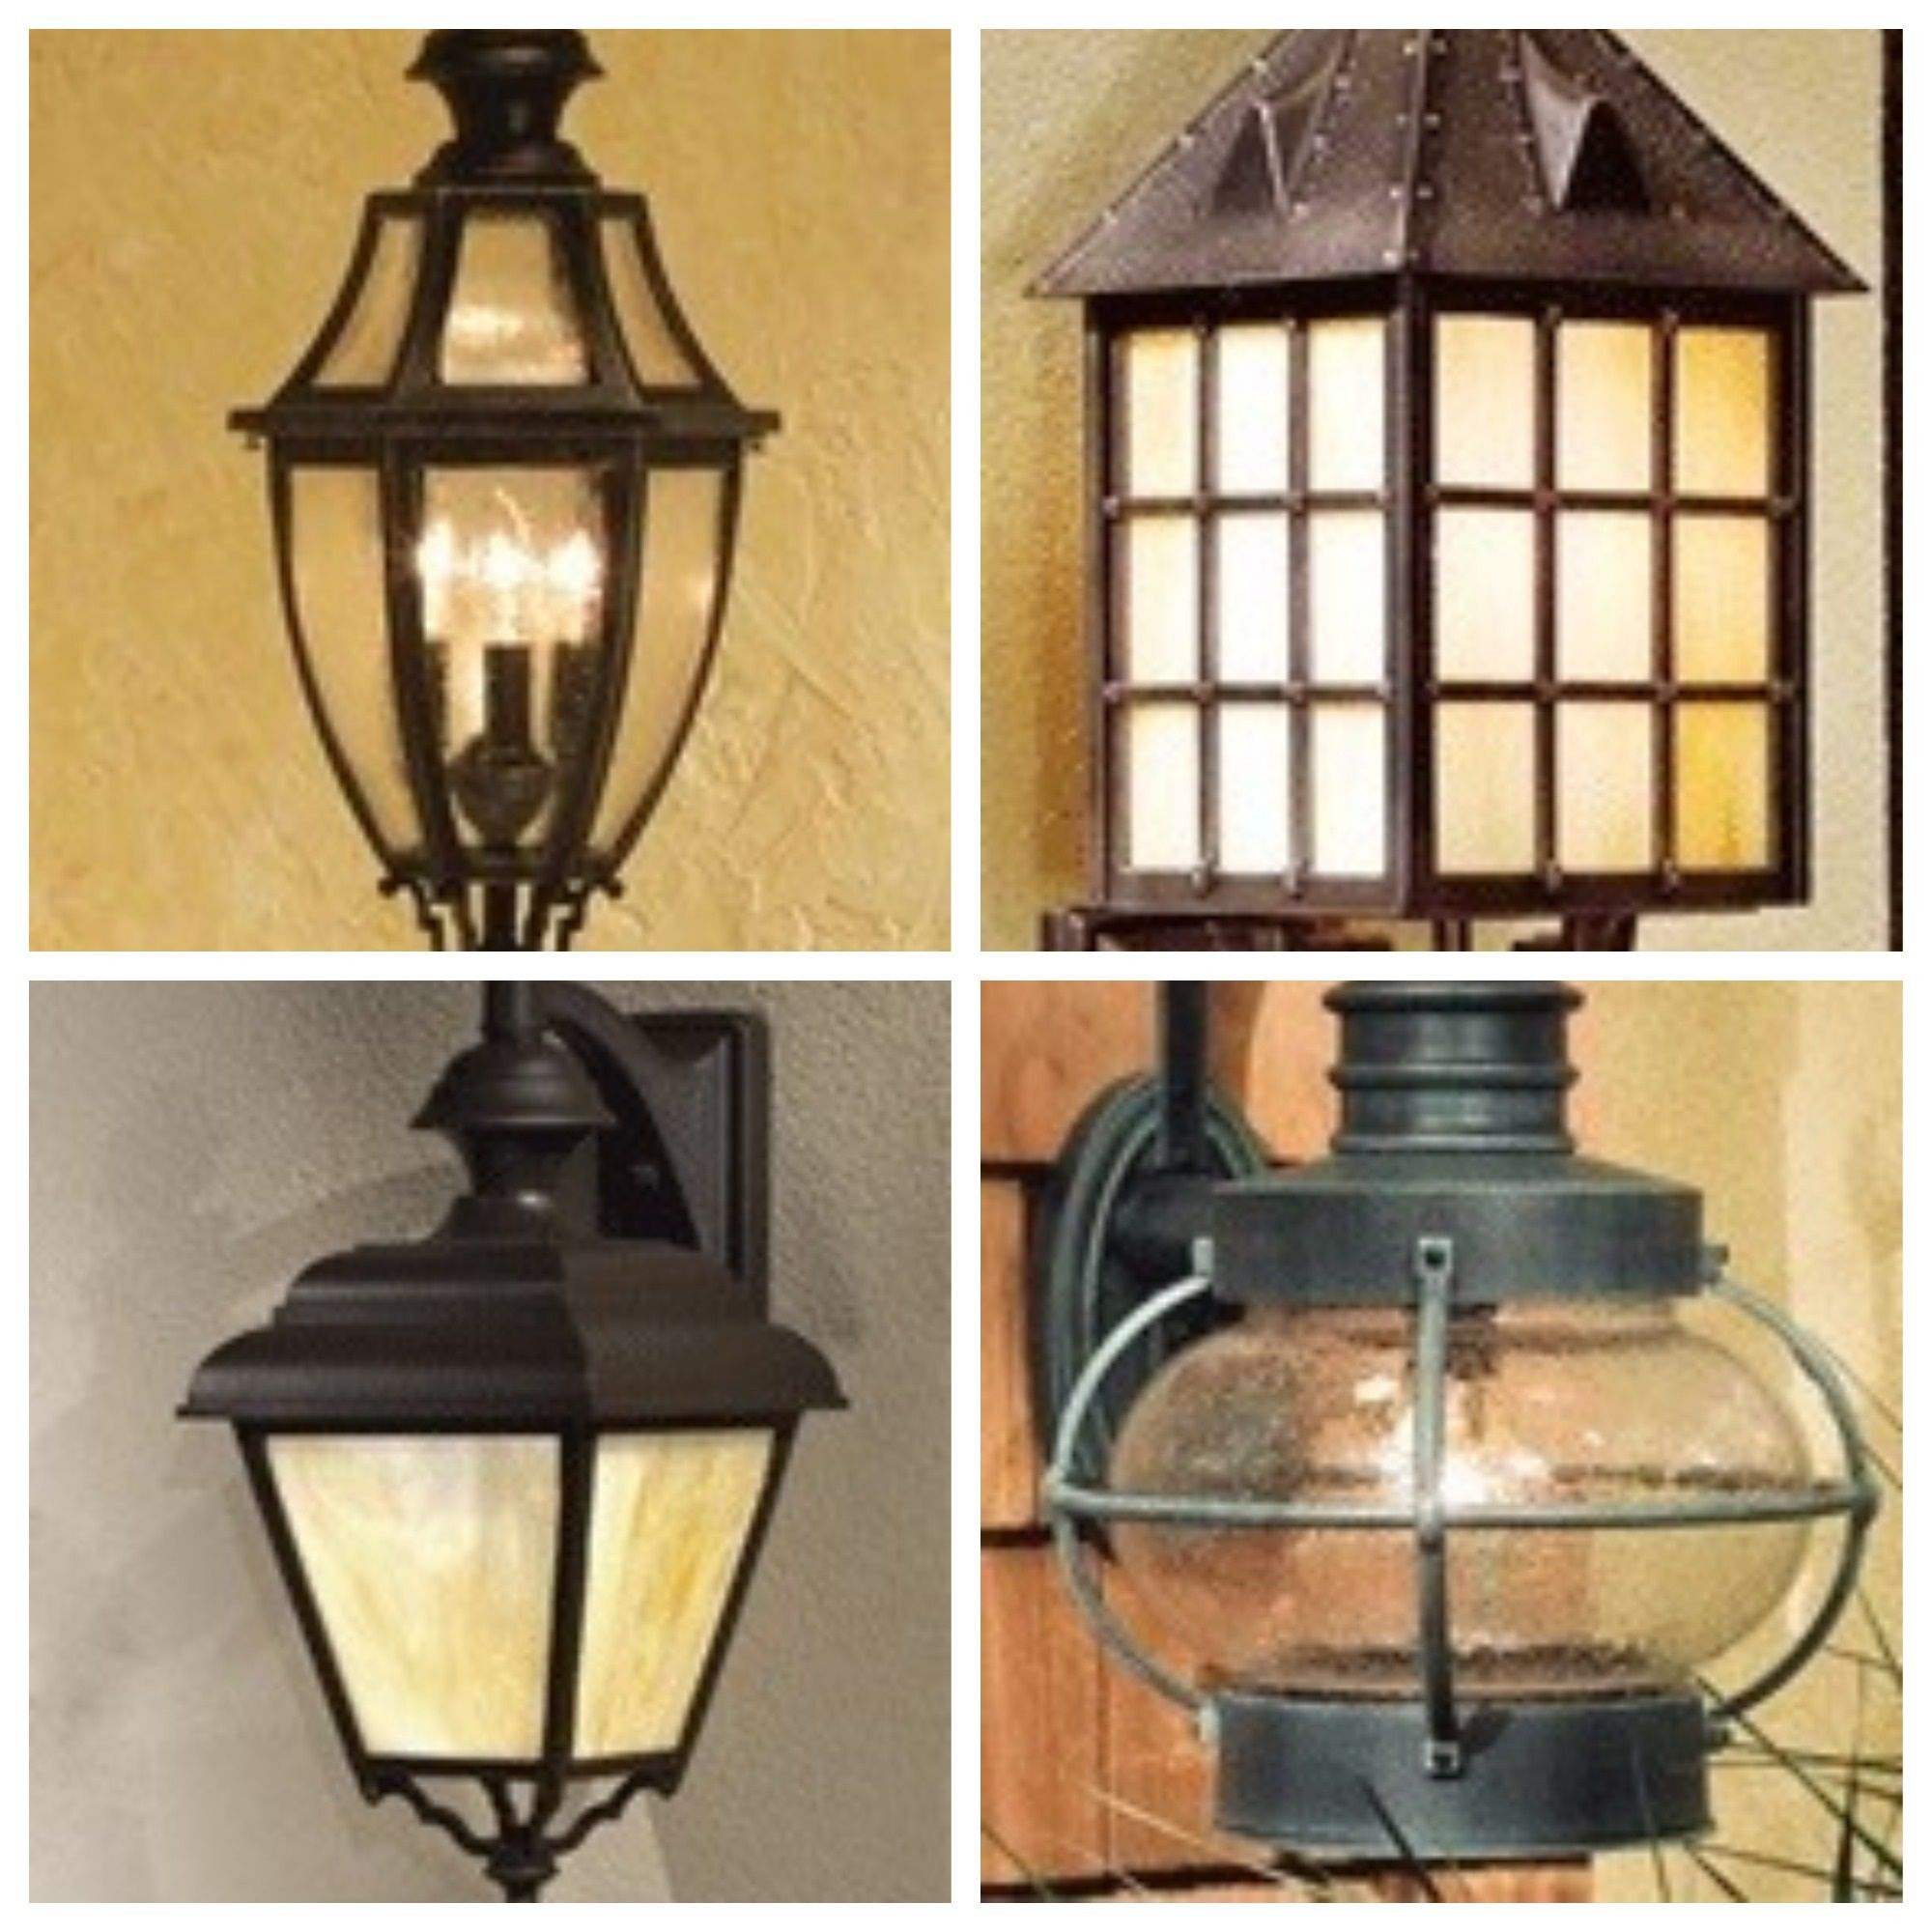 Hanover Lantern Has A New Home In